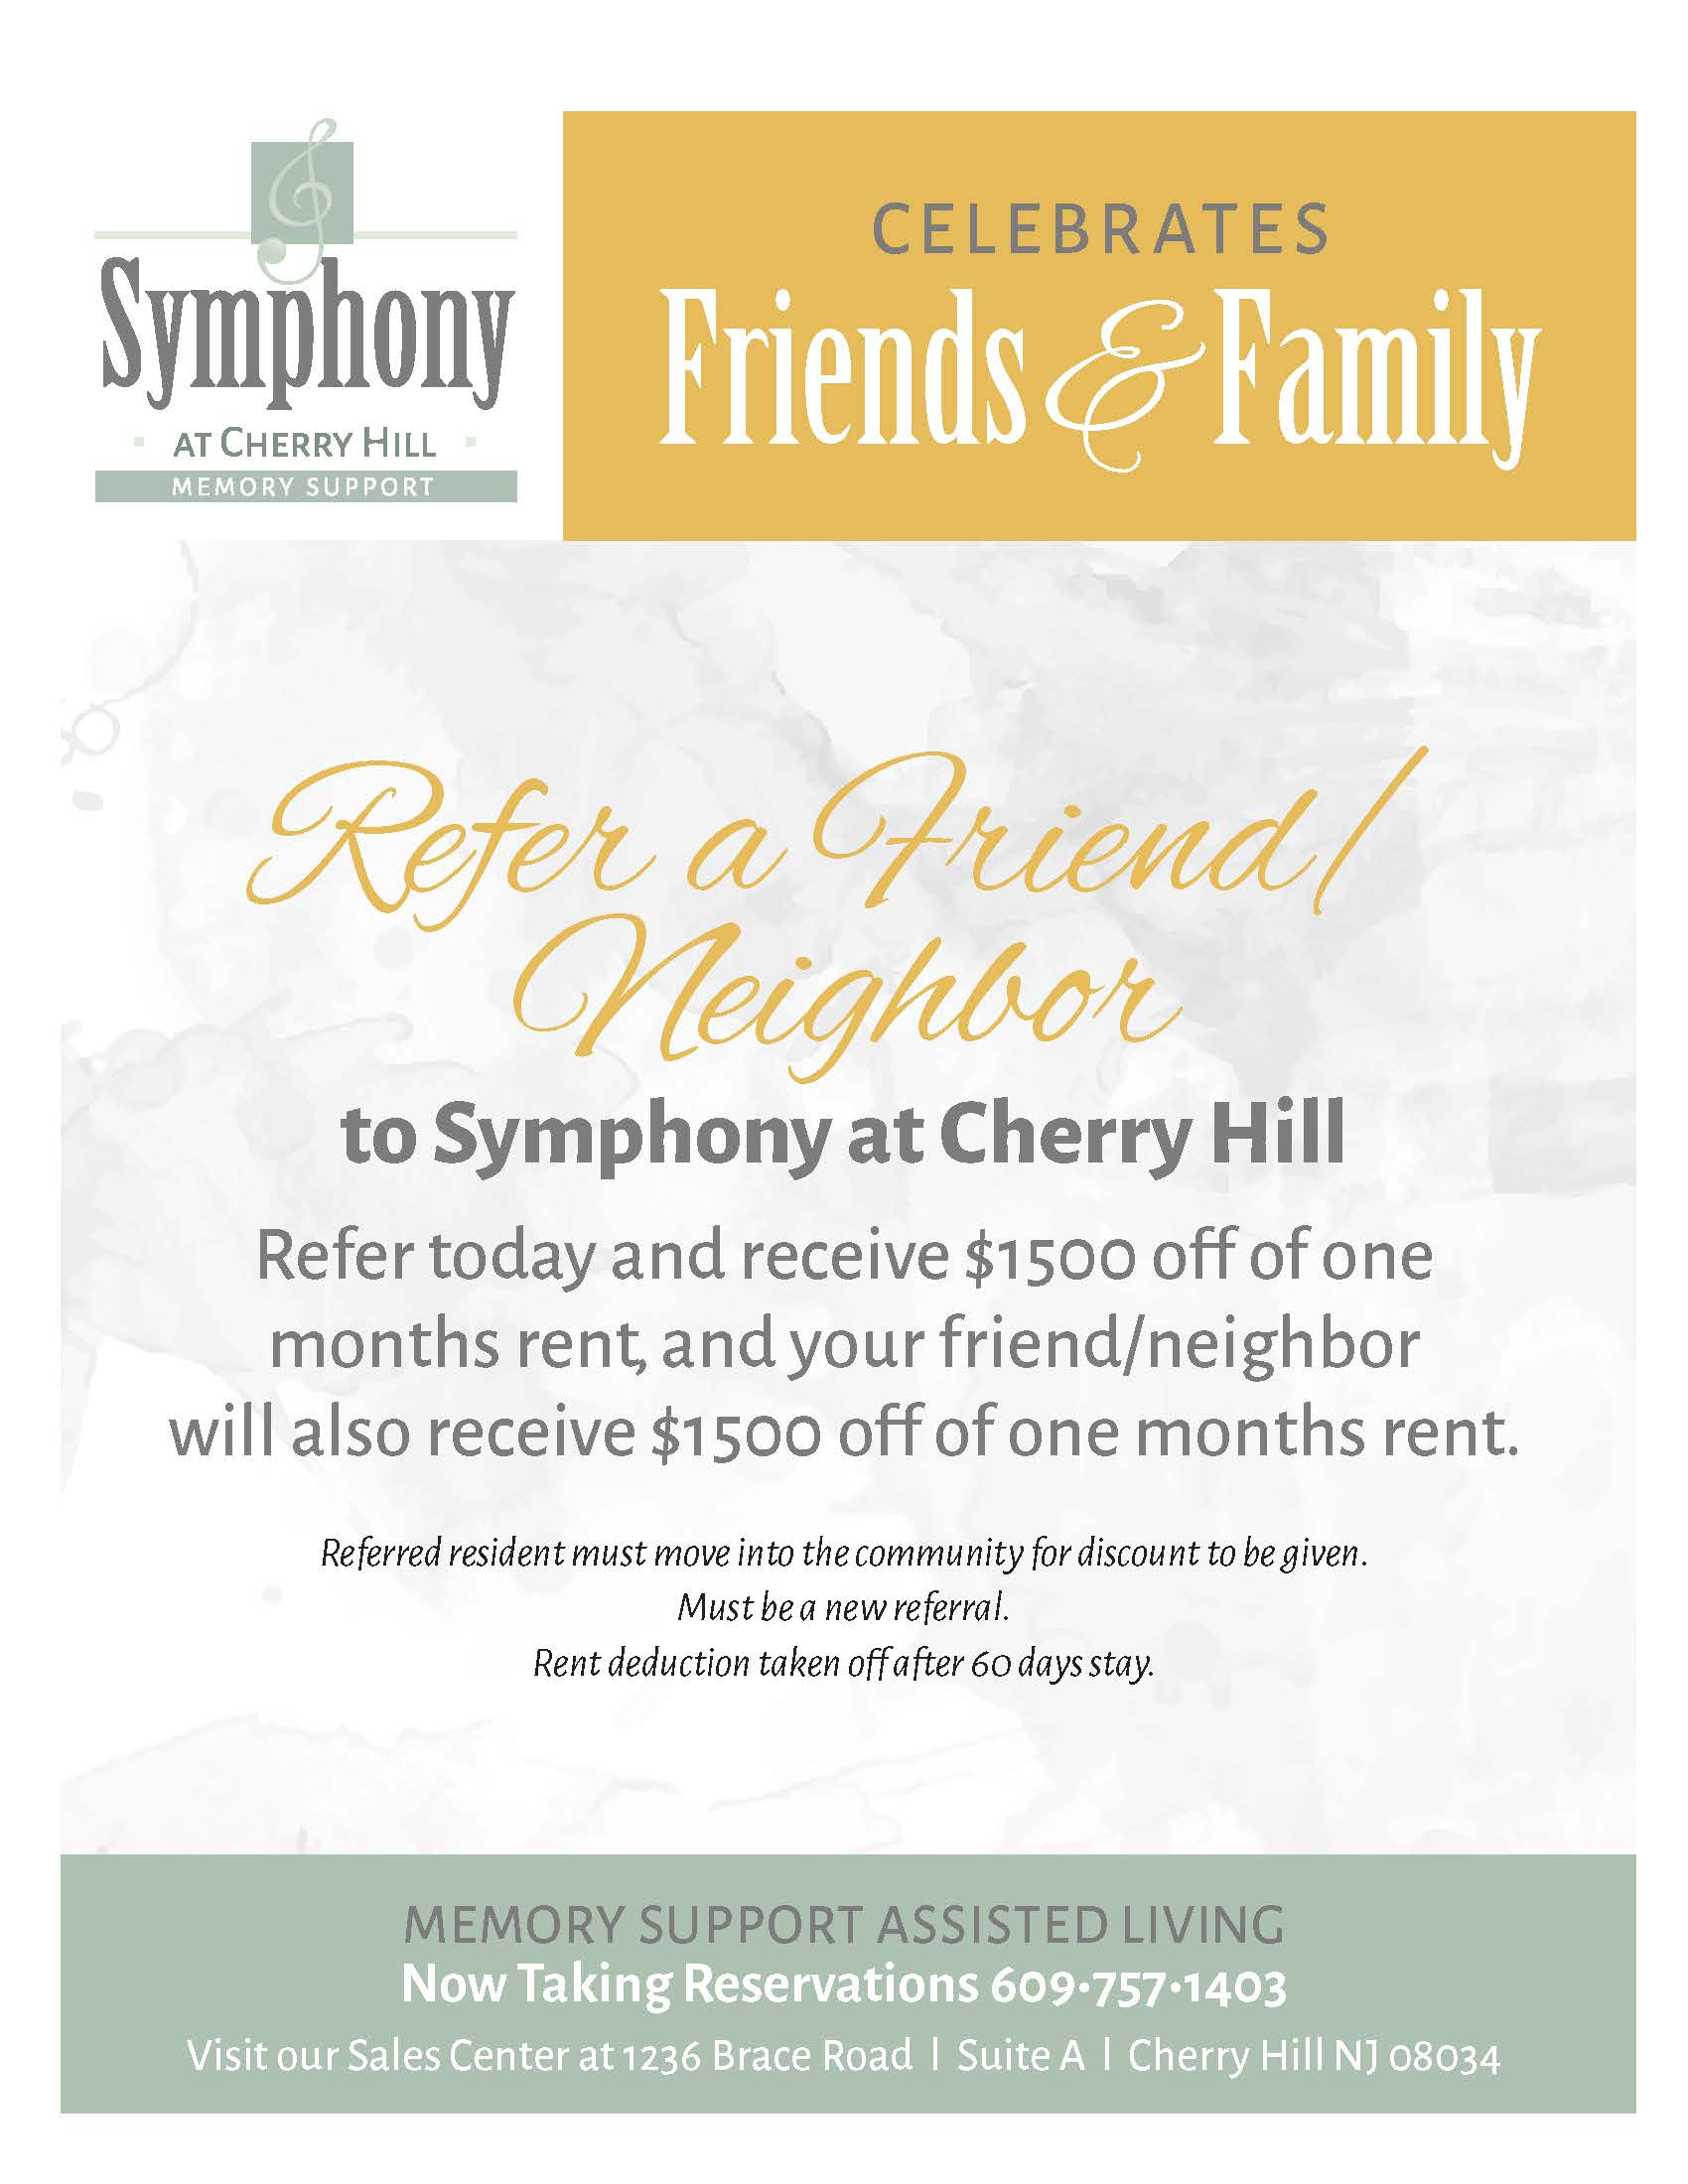 Refer a friend discount flyer for Symphony at Cherry Hill in Cherry Hill, New Jersey.